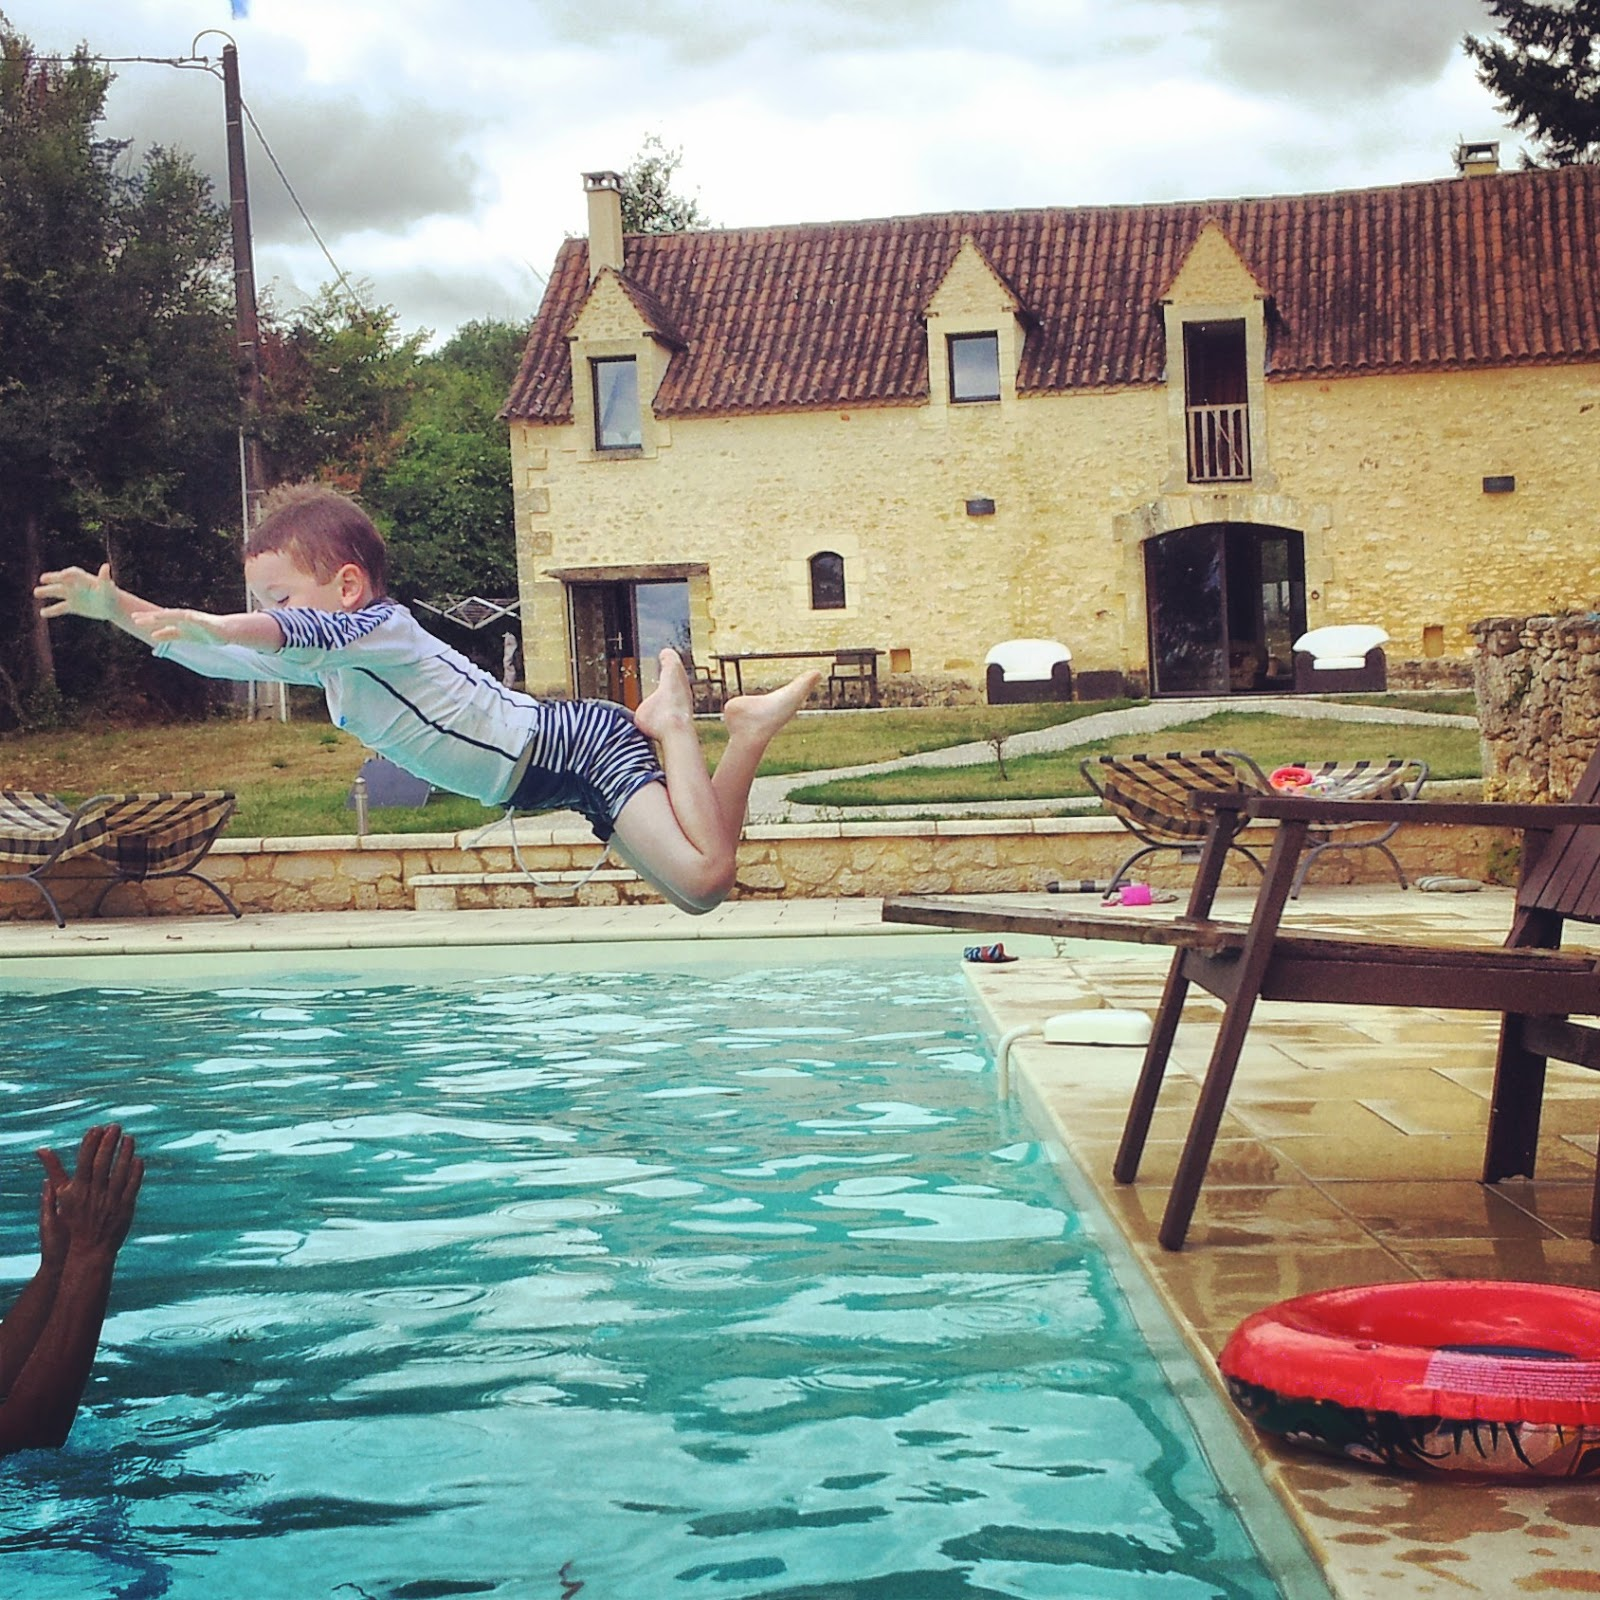 Jumping into pool